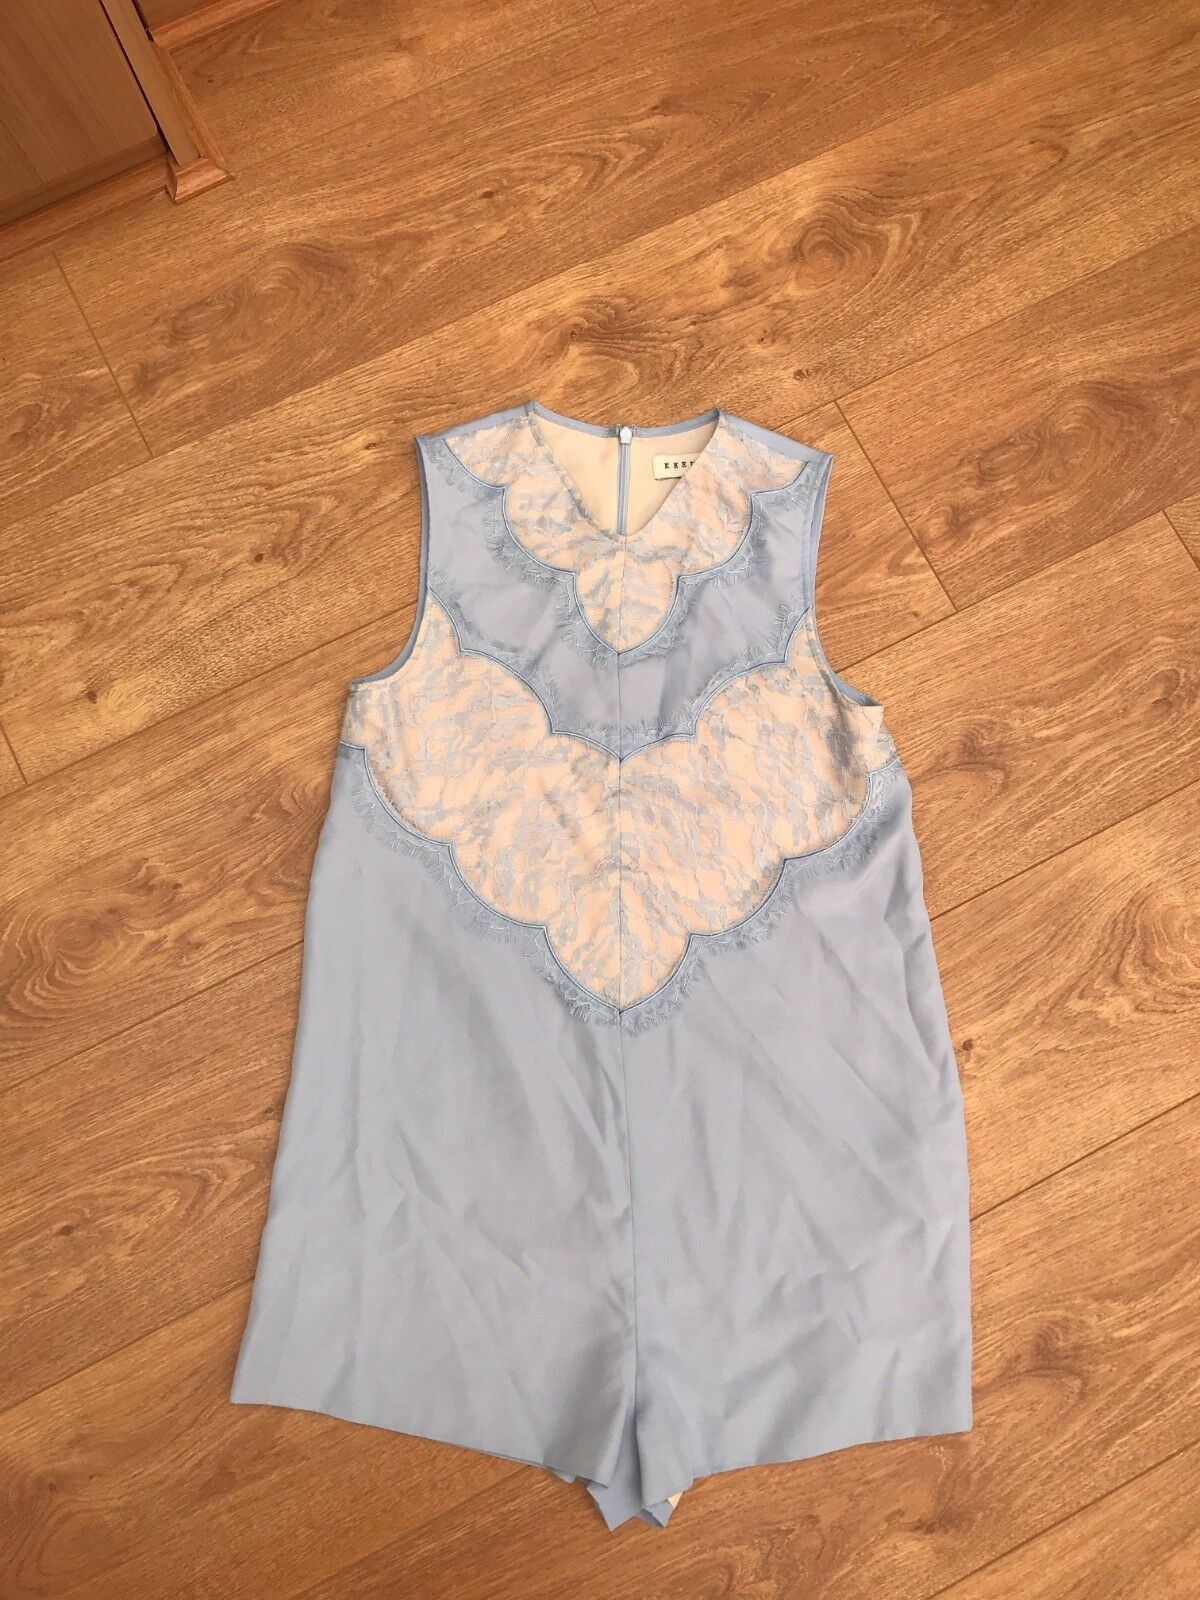 Keepsake playsuit bluee with lace size xs